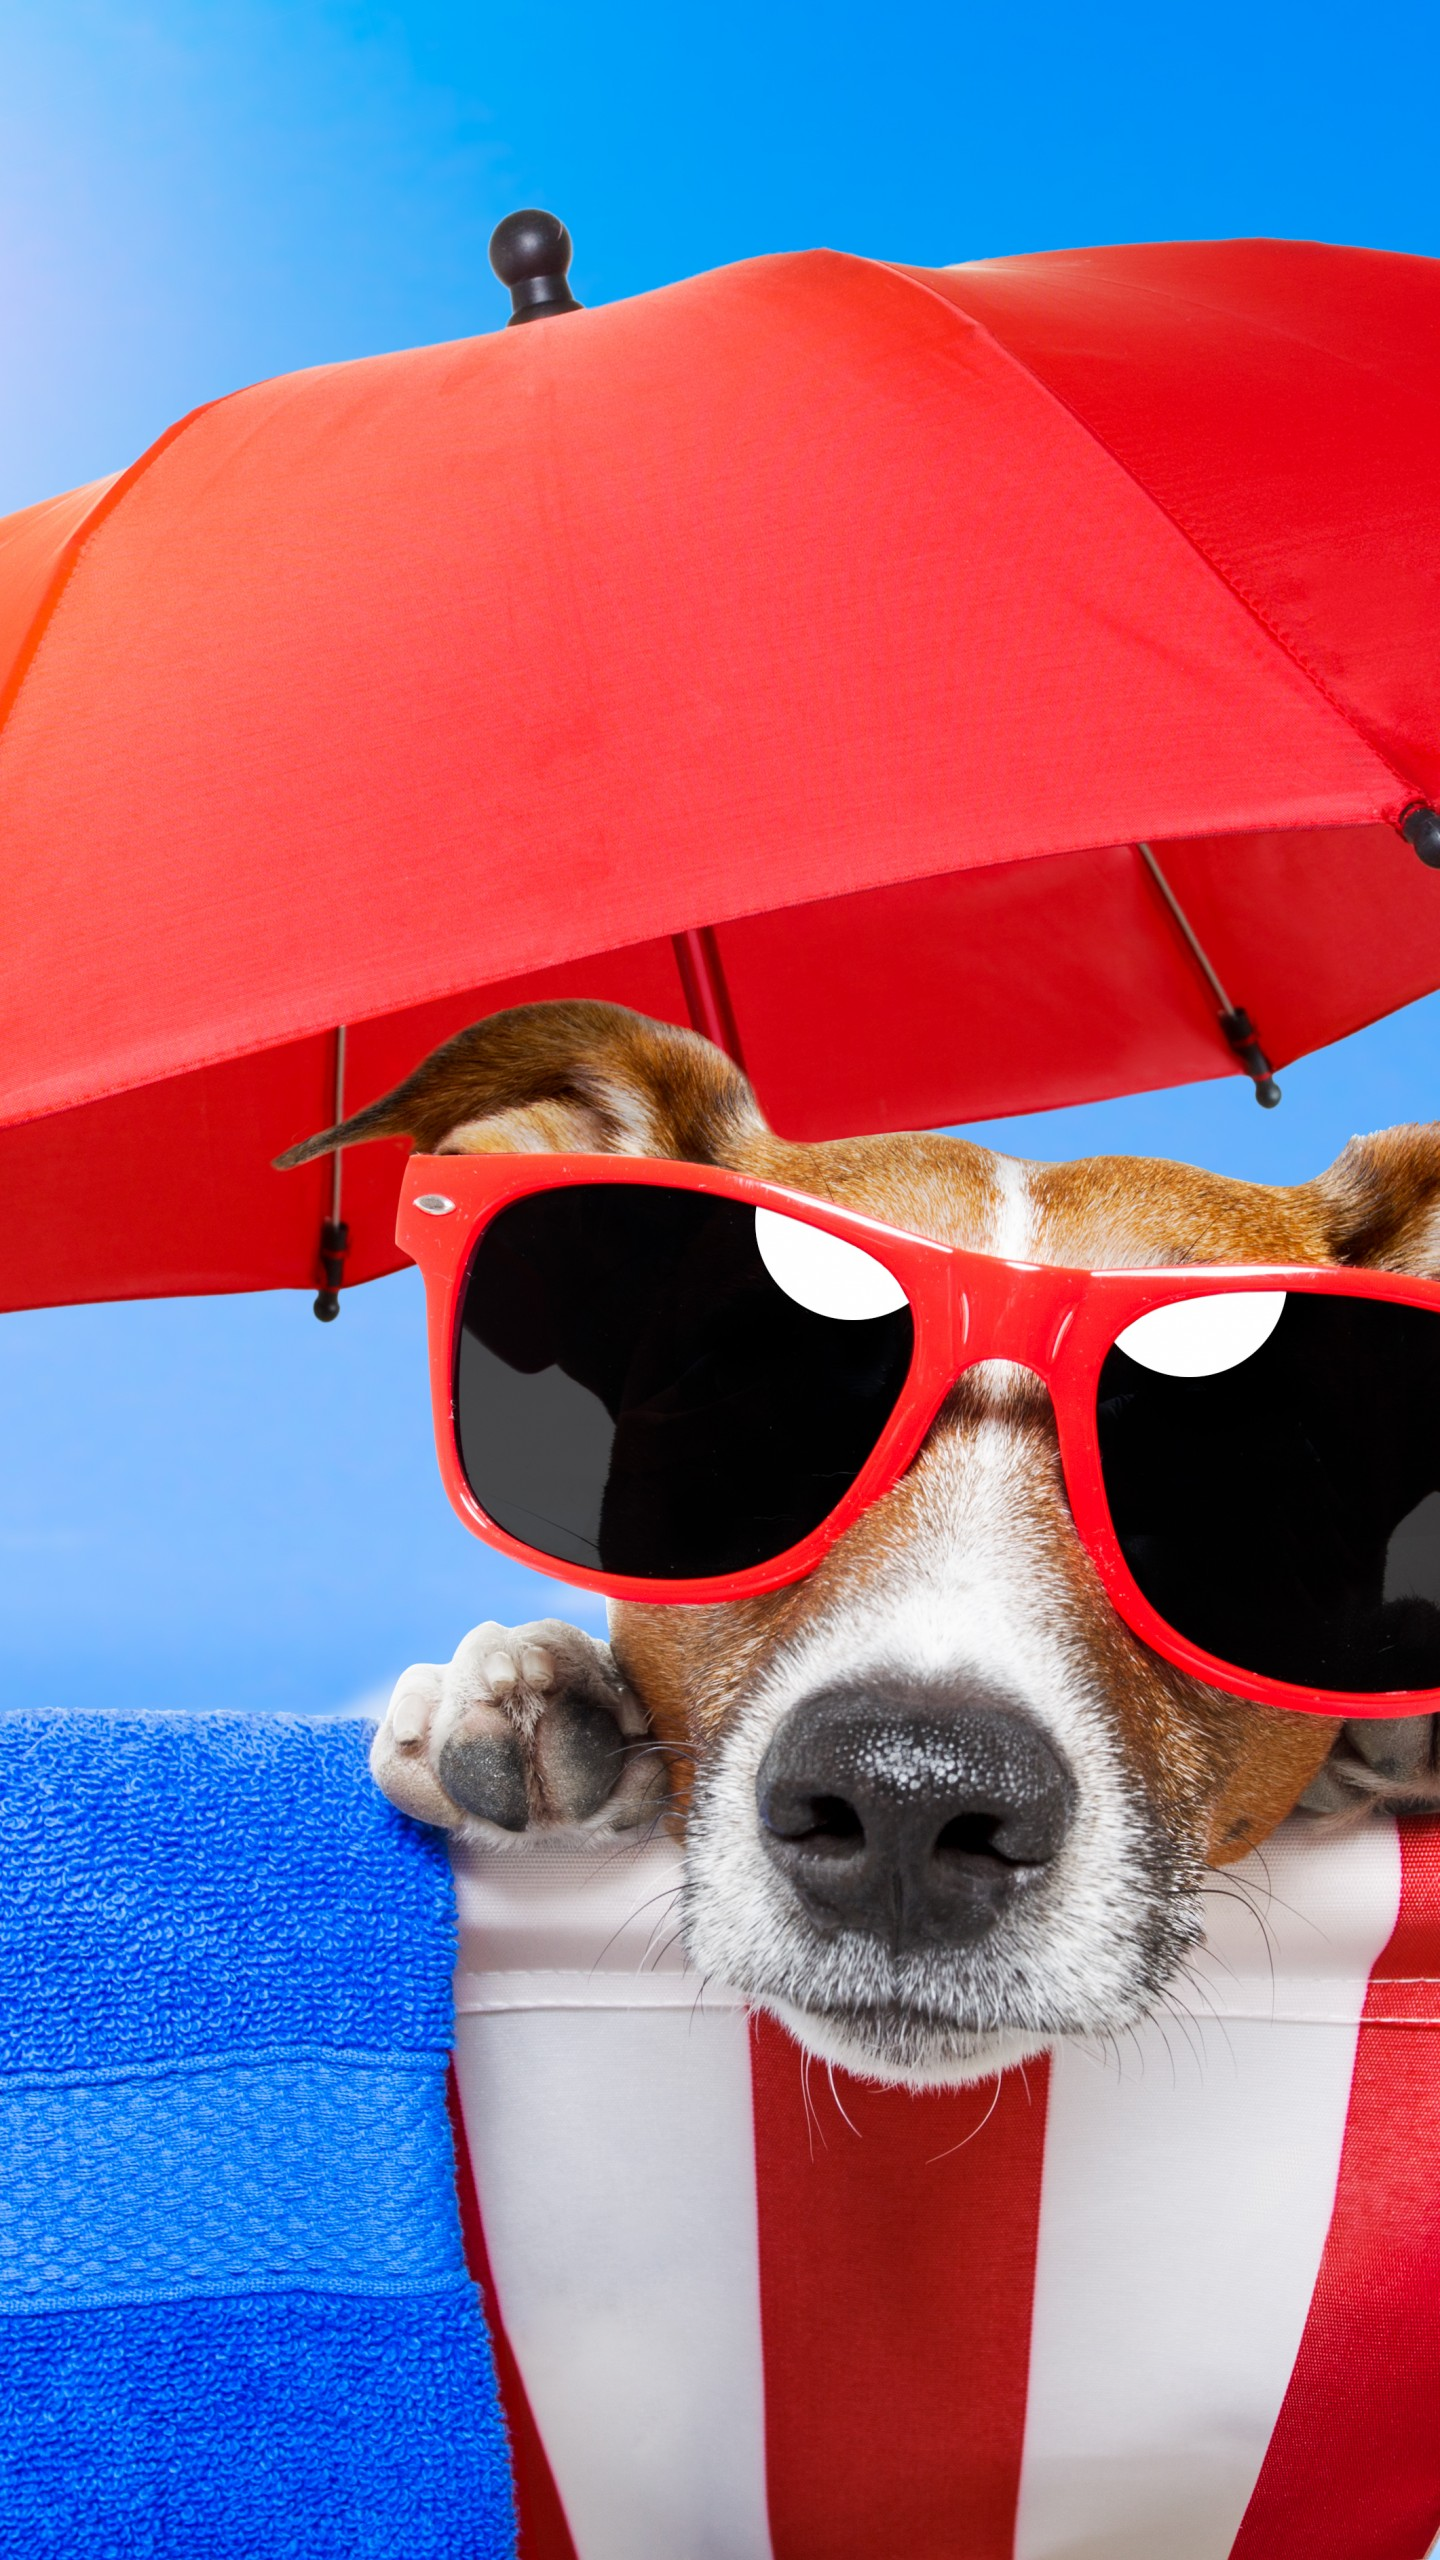 Cute Quotes About Life Wallpapers Wallpaper Dog Puppy Sun Summer Beach Sunglasses